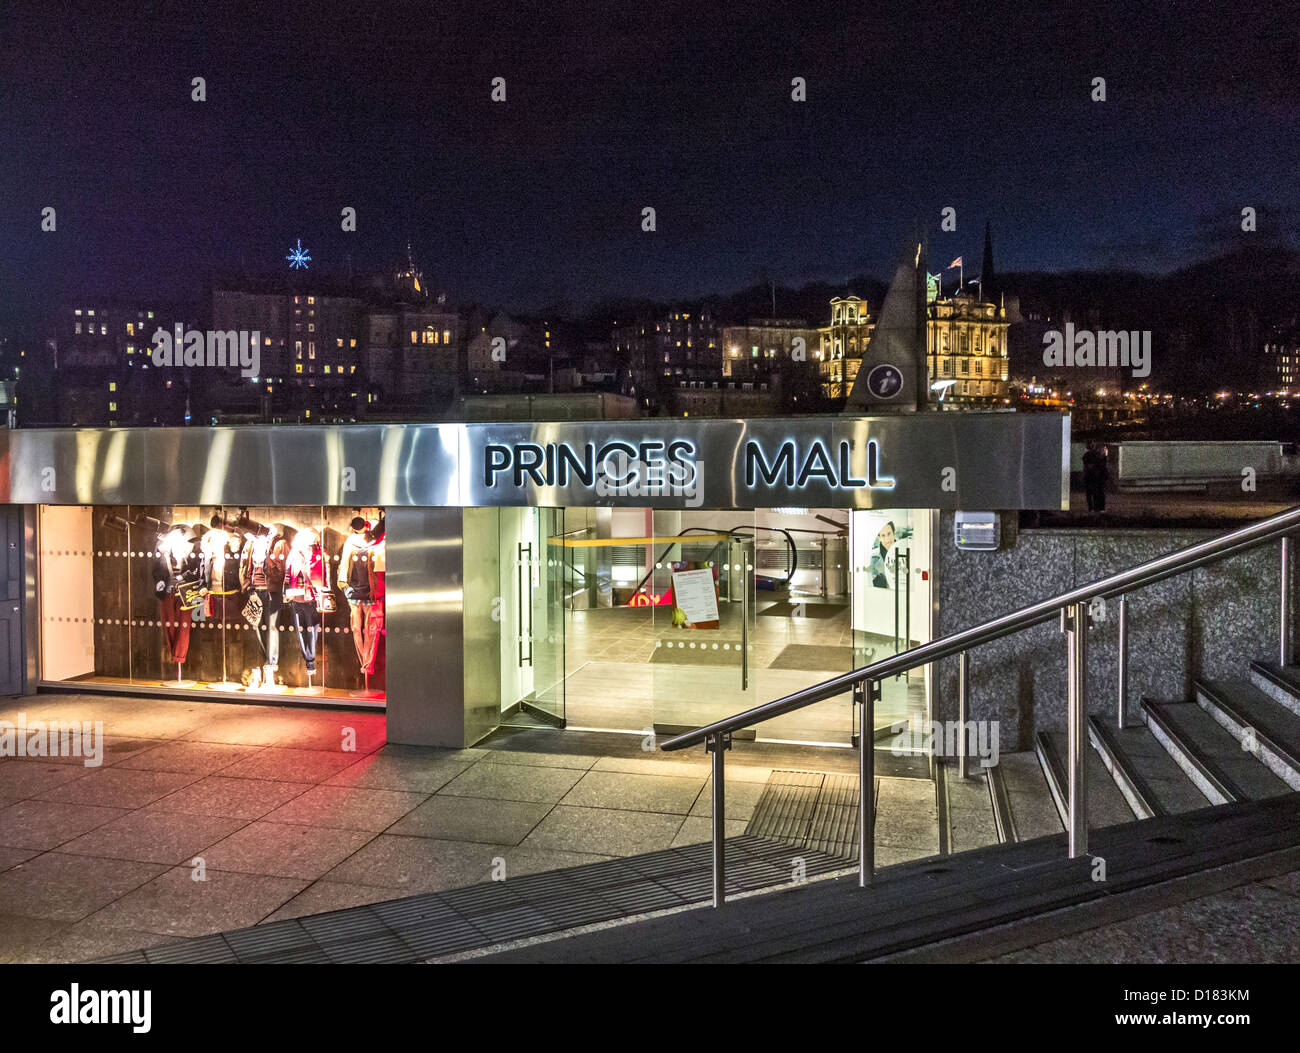 Night view of entrance to Princes Mall off Princes Street in Edinburgh Scotland - Stock Image